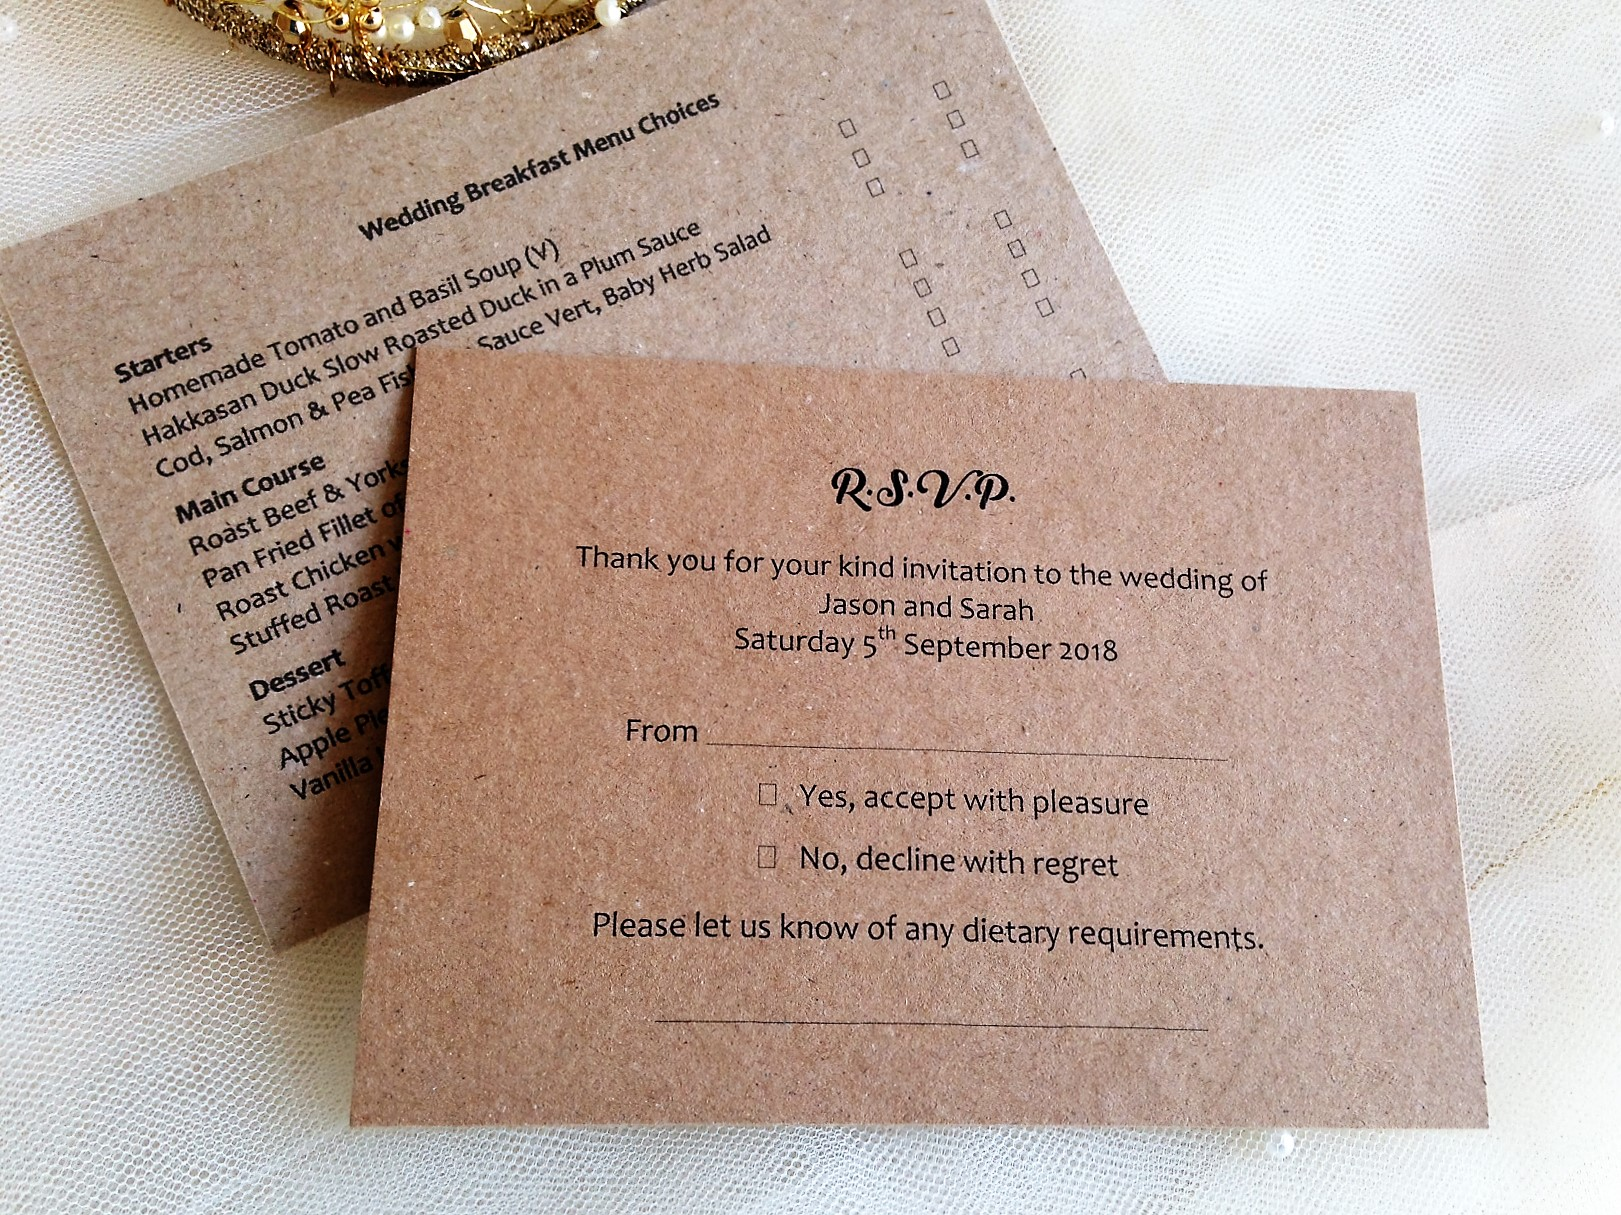 Wedding Invitations With Response Cards And Envelopes: Menu RSVP Cards And Envelopes